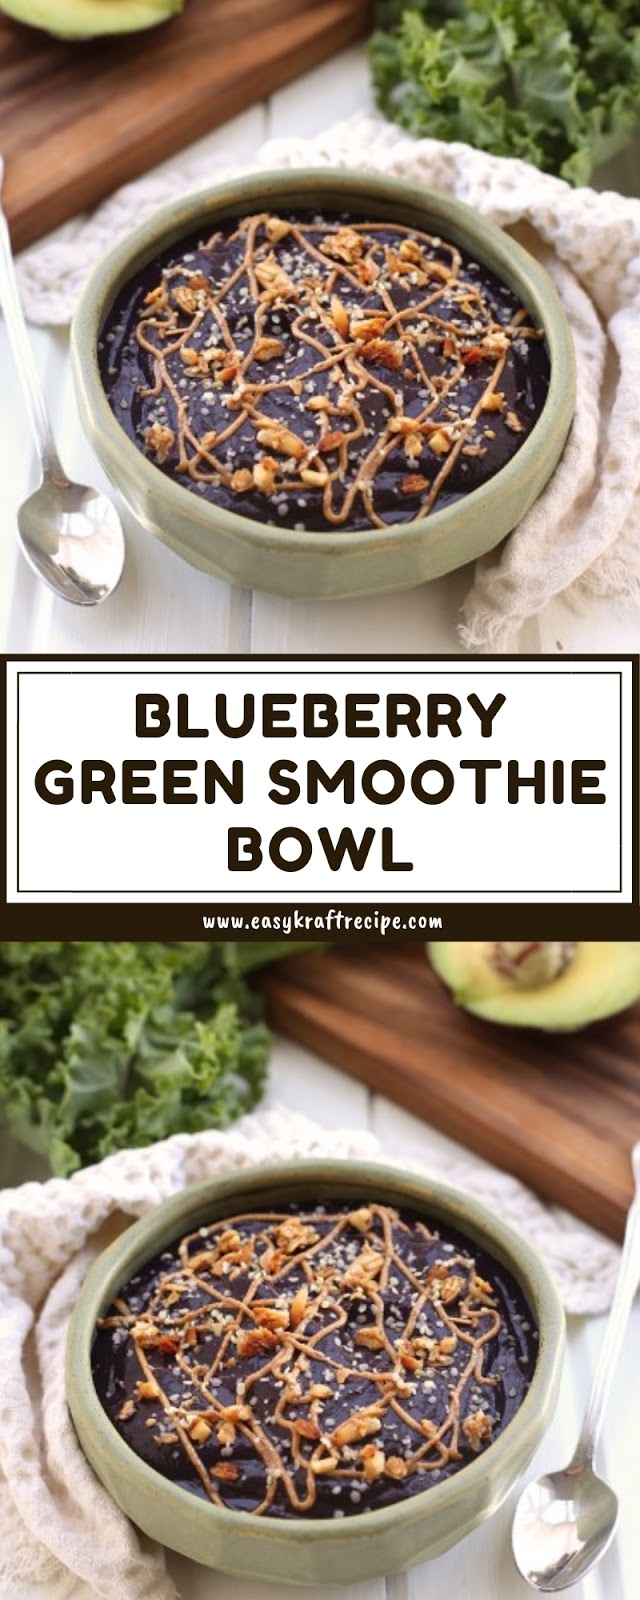 BLUEBERRY GREEN SMOOTHIE BOWL